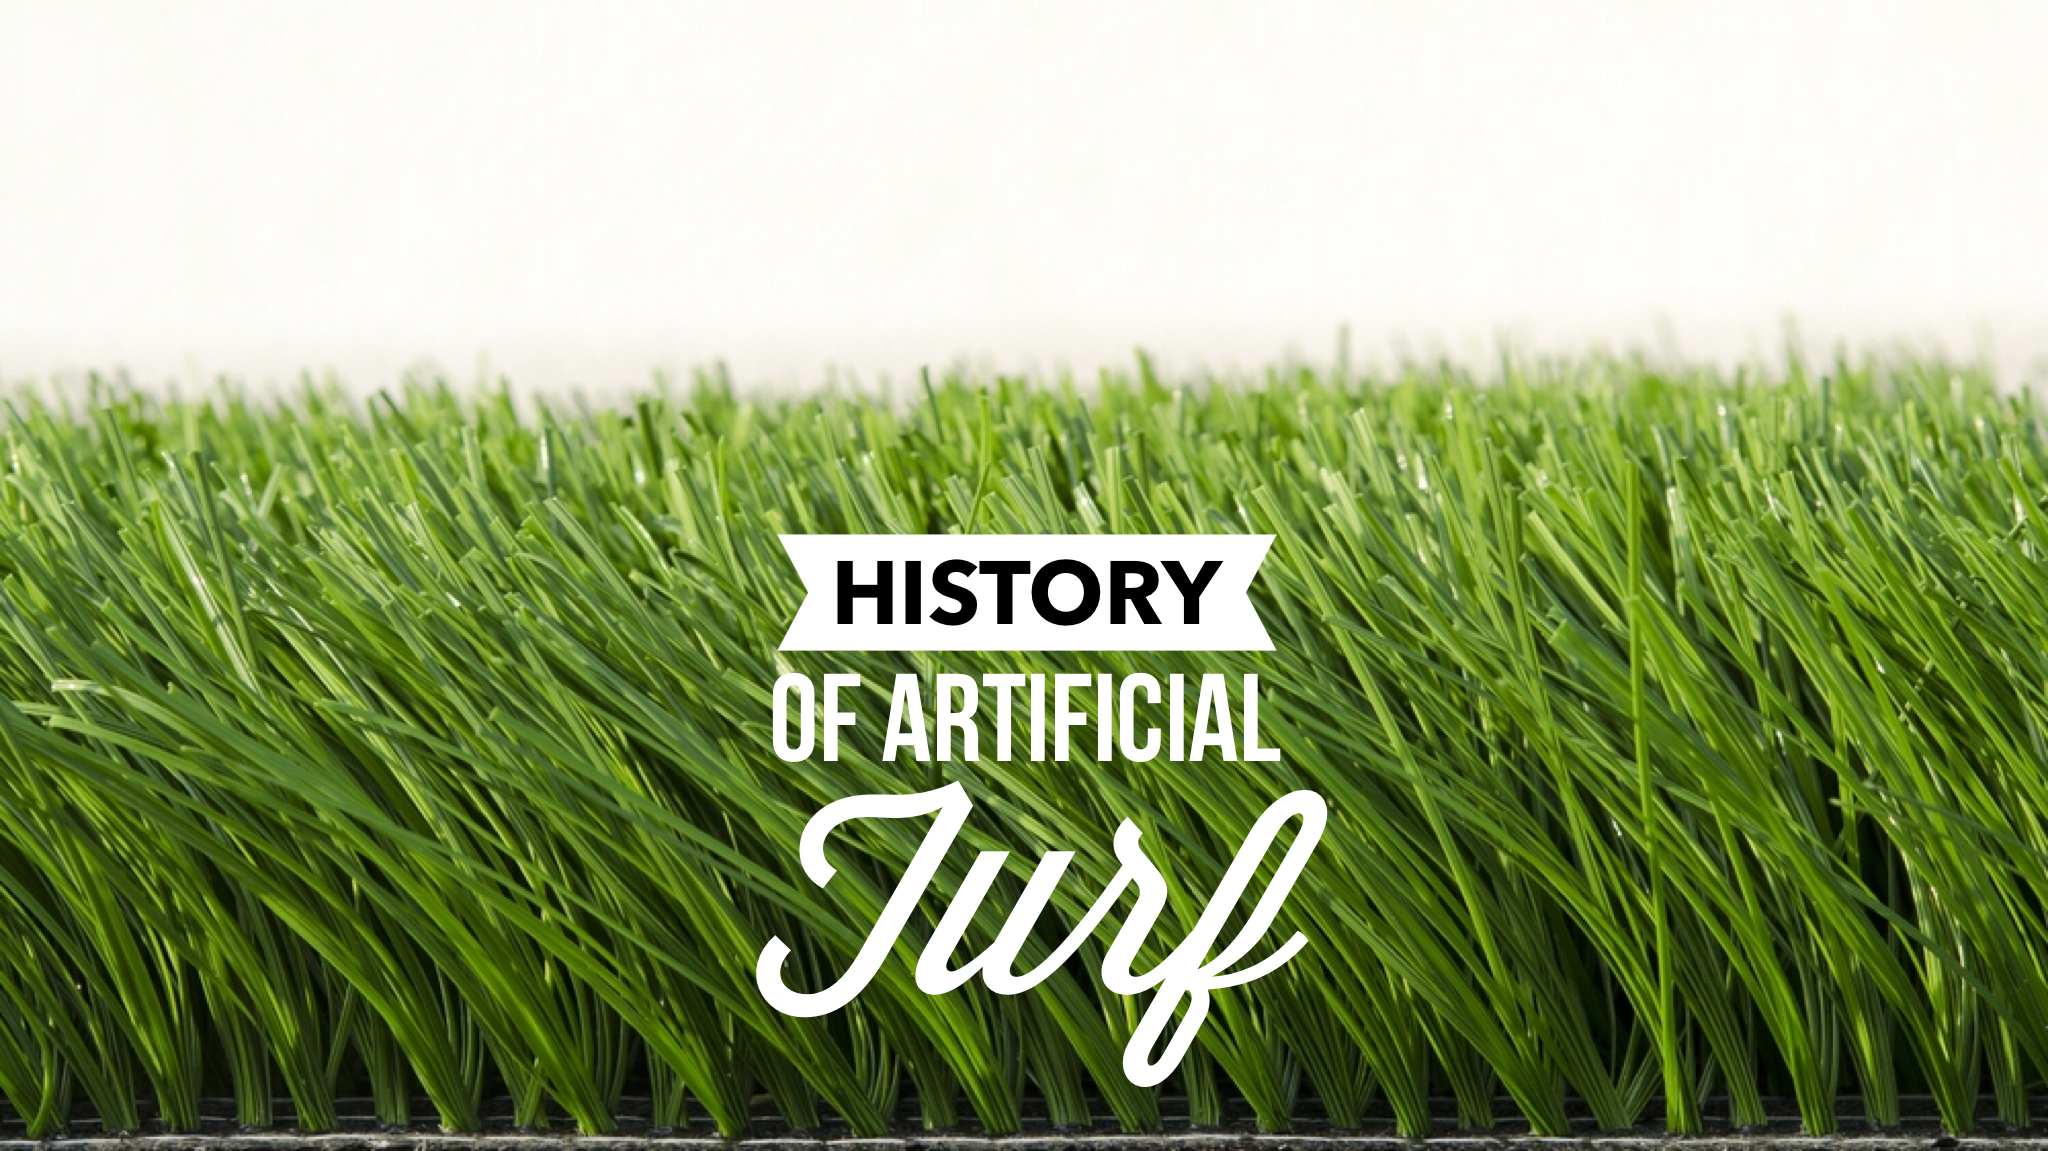 history of artificial turf in west palm beach